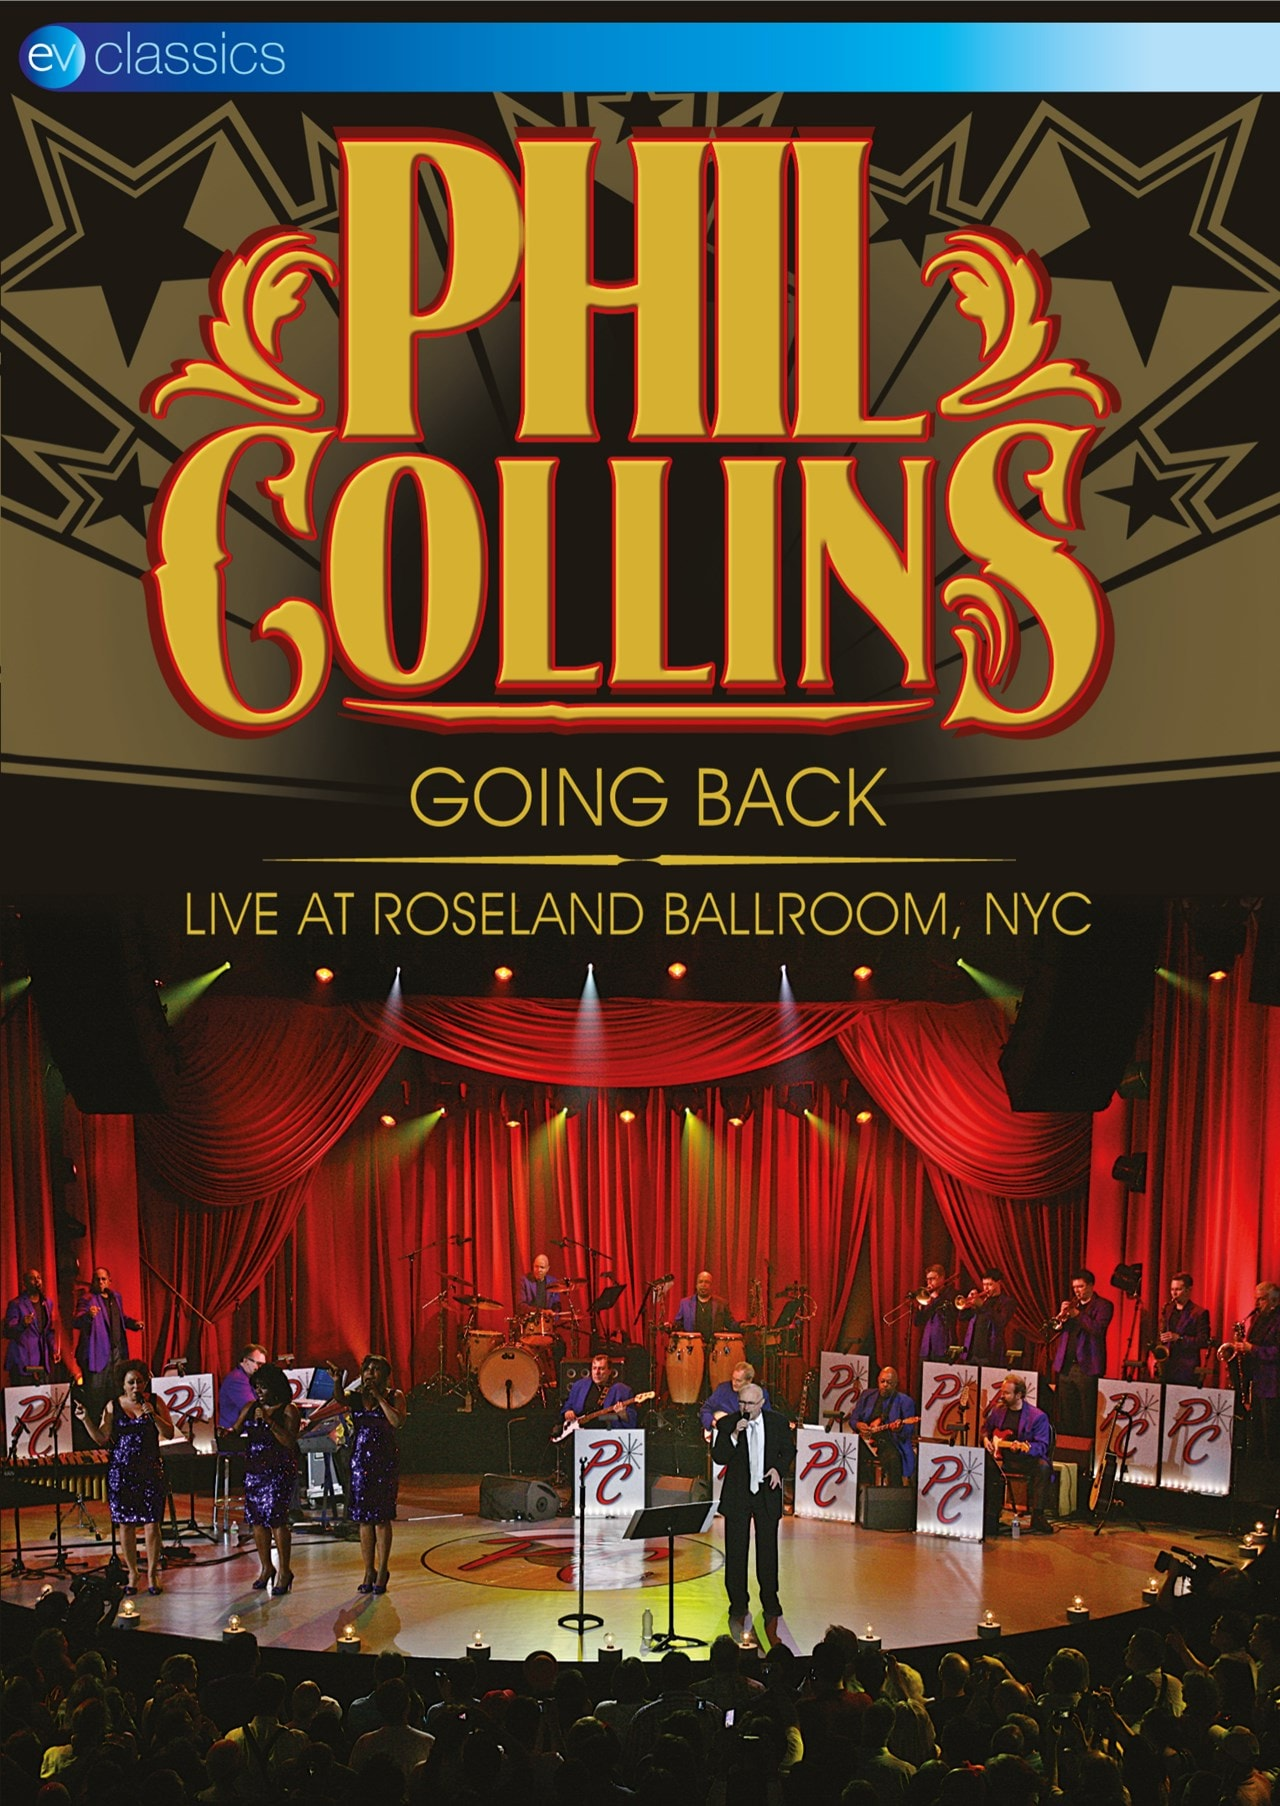 Phil Collins: Going Back - Live at Roseland Ballroom, NYC - 1